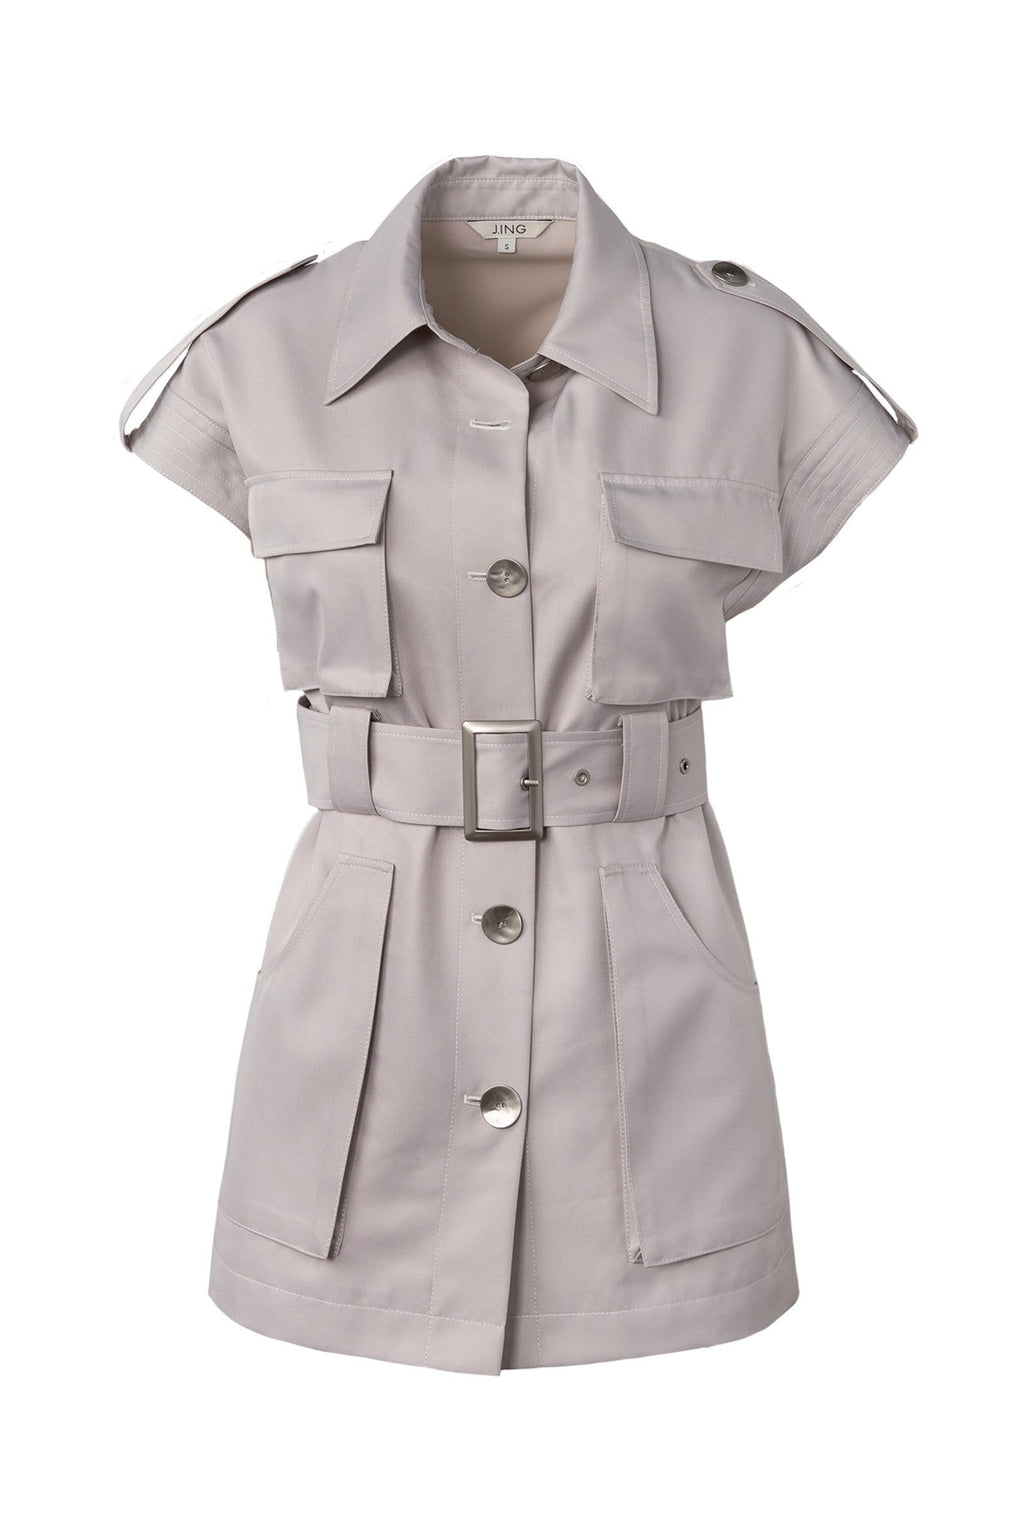 utility style shirt dress with belted waist by J.ING